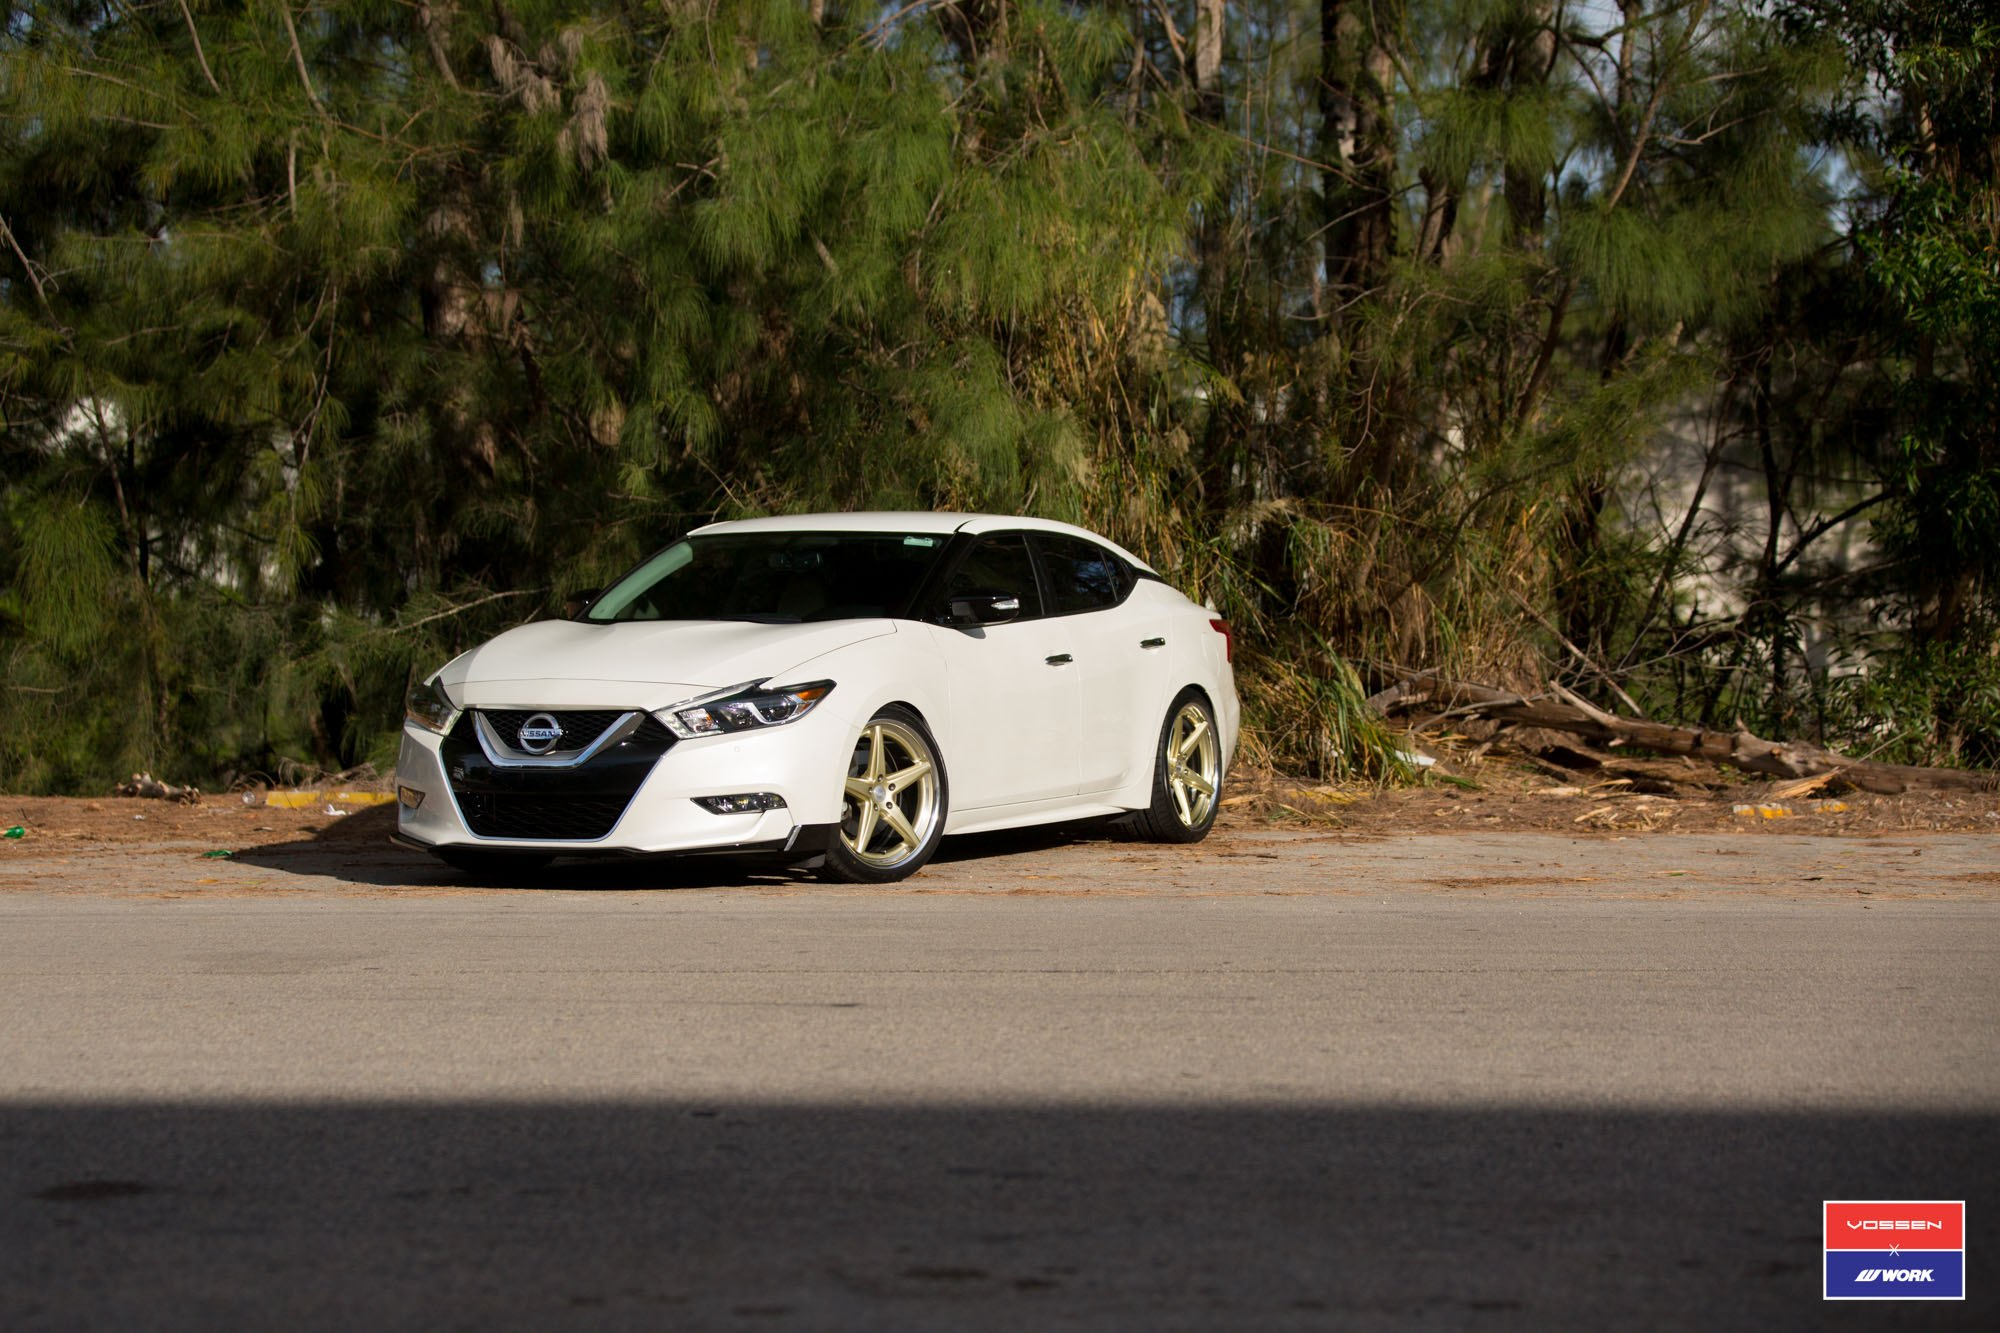 Vws3 Custom Wheels By Vossen On Lowered Nissan Maxima Carid Com